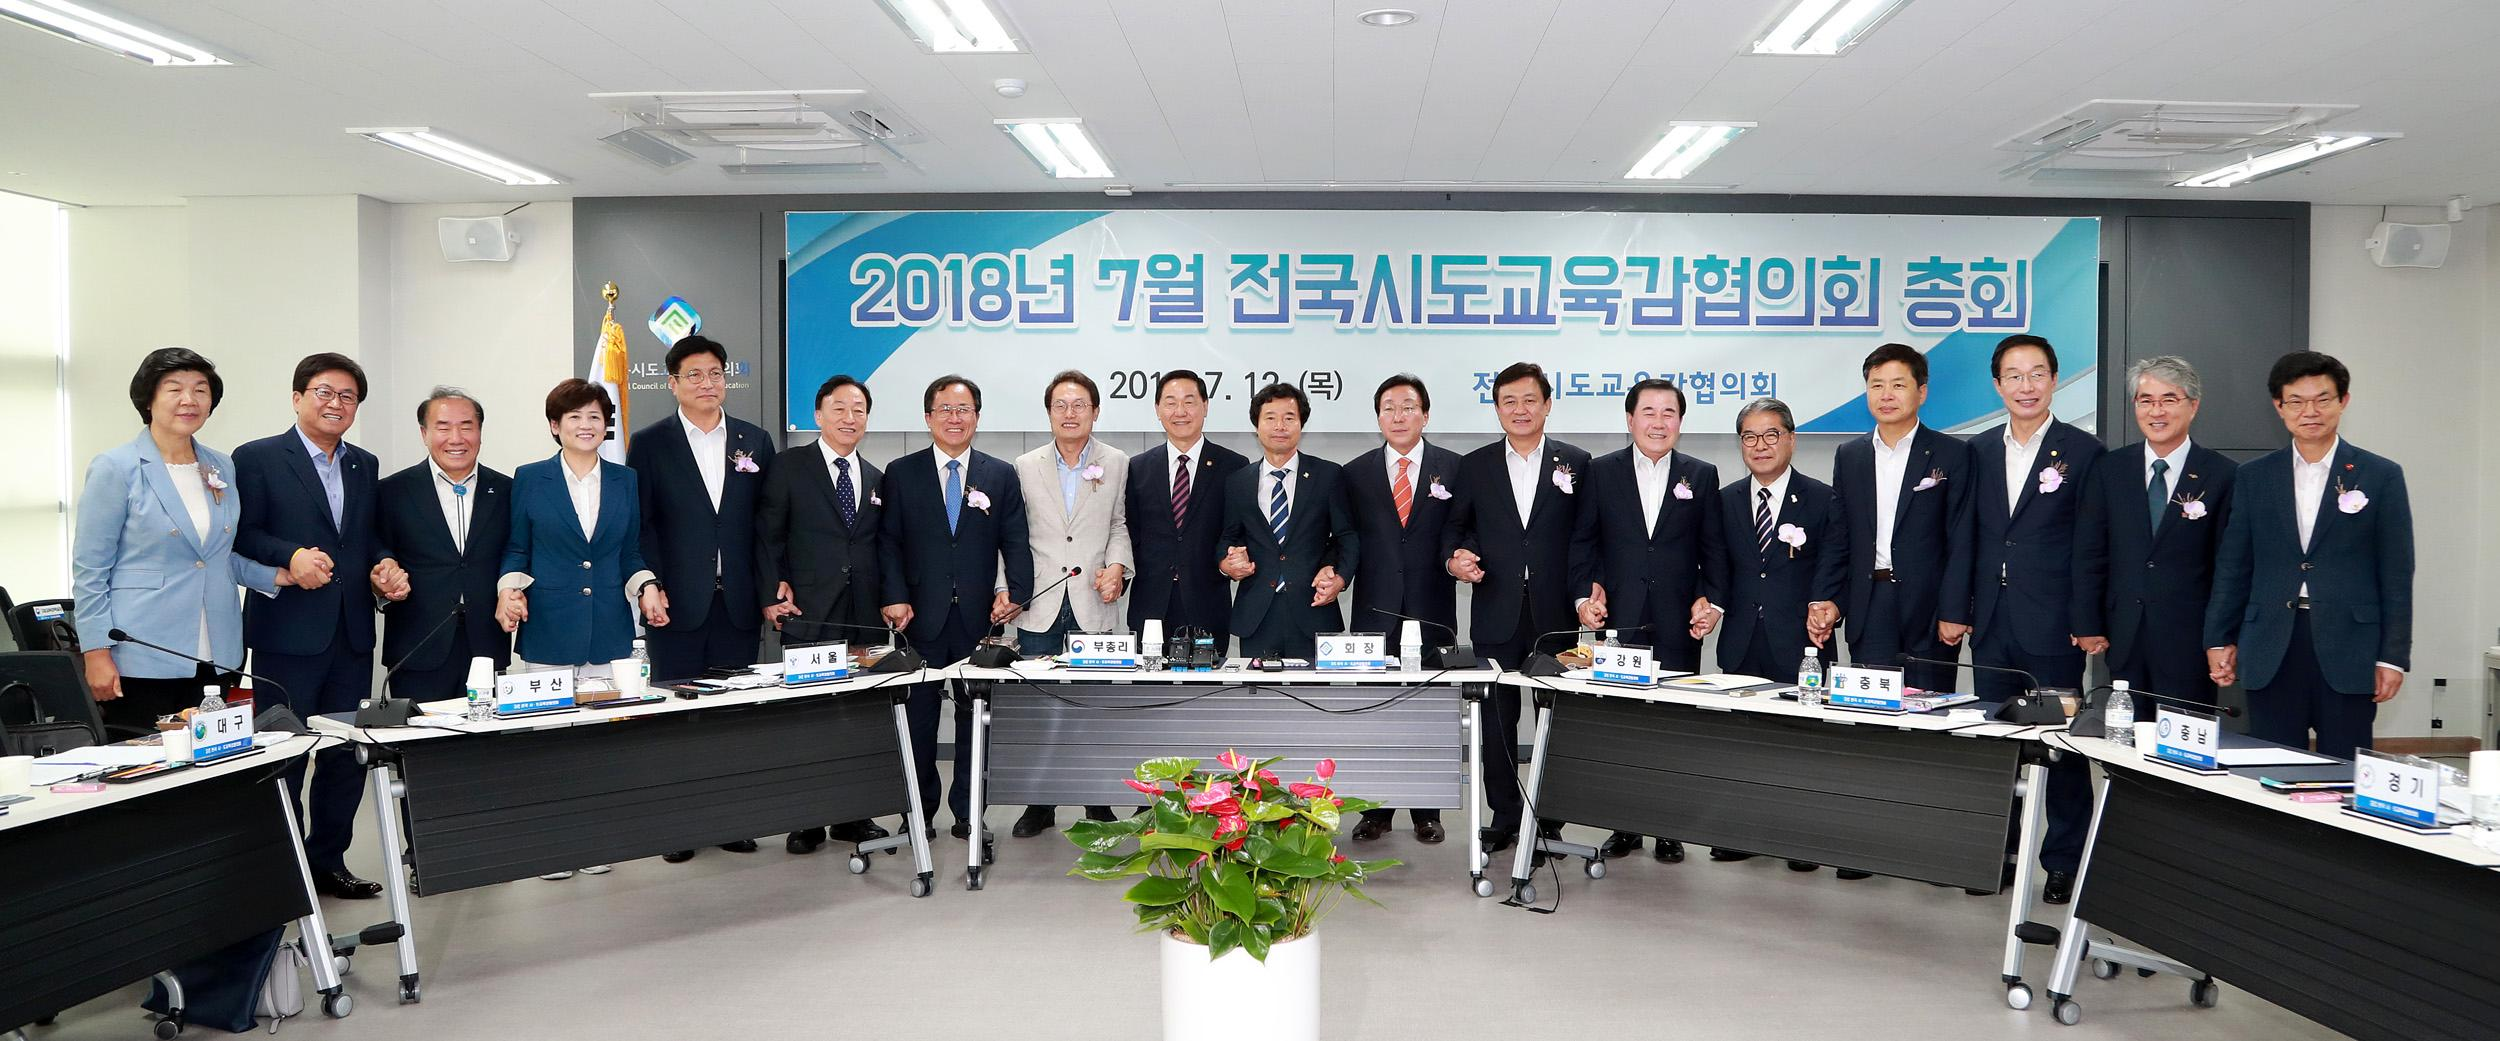 Meeting of the National Council of Governors of Education 사진